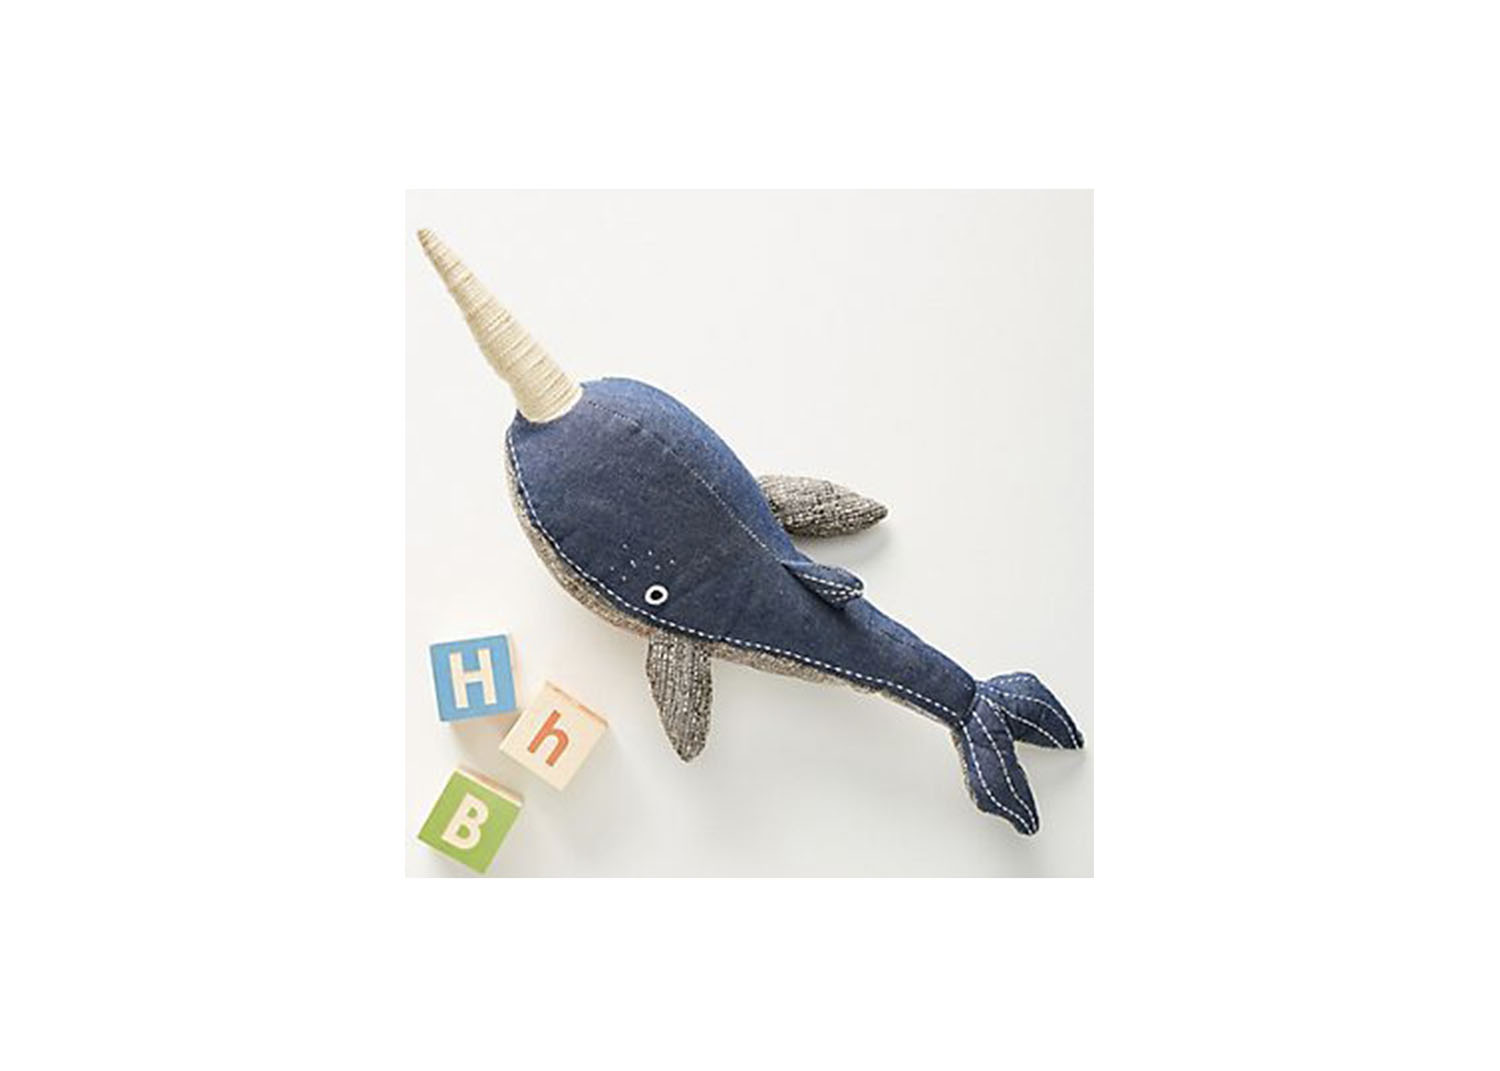 Norris the Narwhal - $24